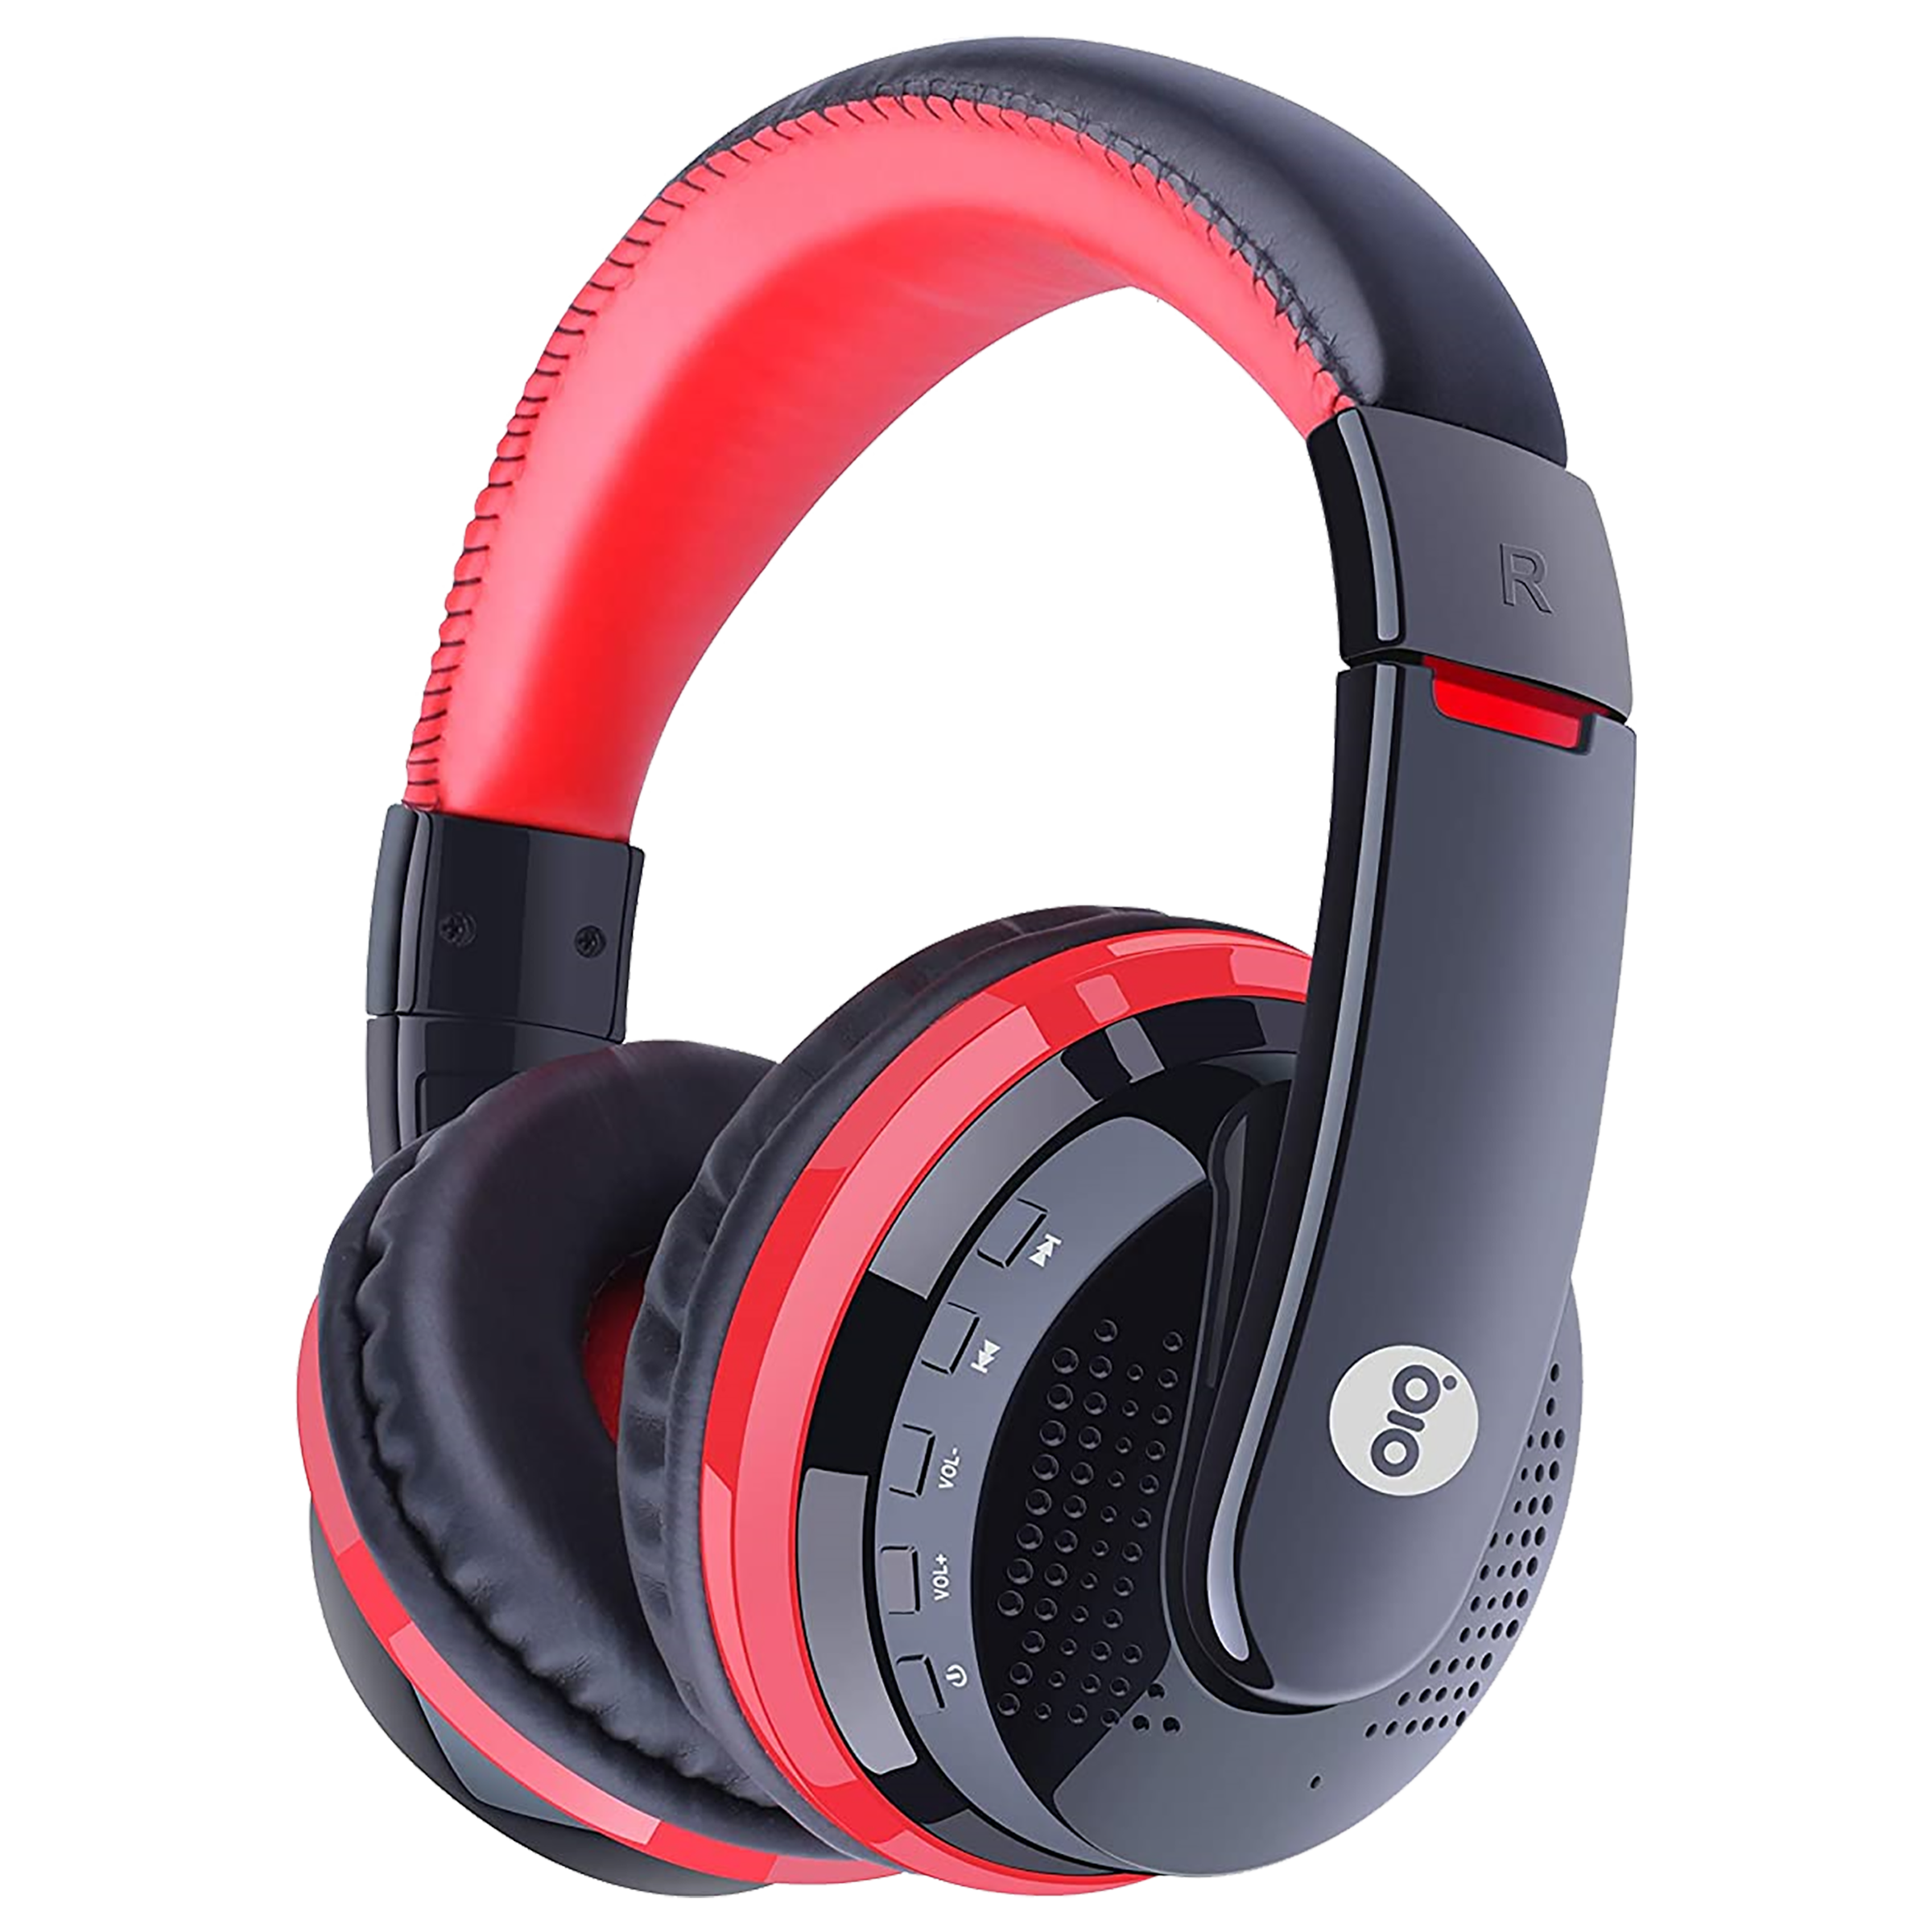 Gizmore Giz Over-Ear Active Noise Cancellation Wireless Headphone with Mic (Bluetooth 5.0, Hi-Fi Stereo Sound, MH411, Red)_1